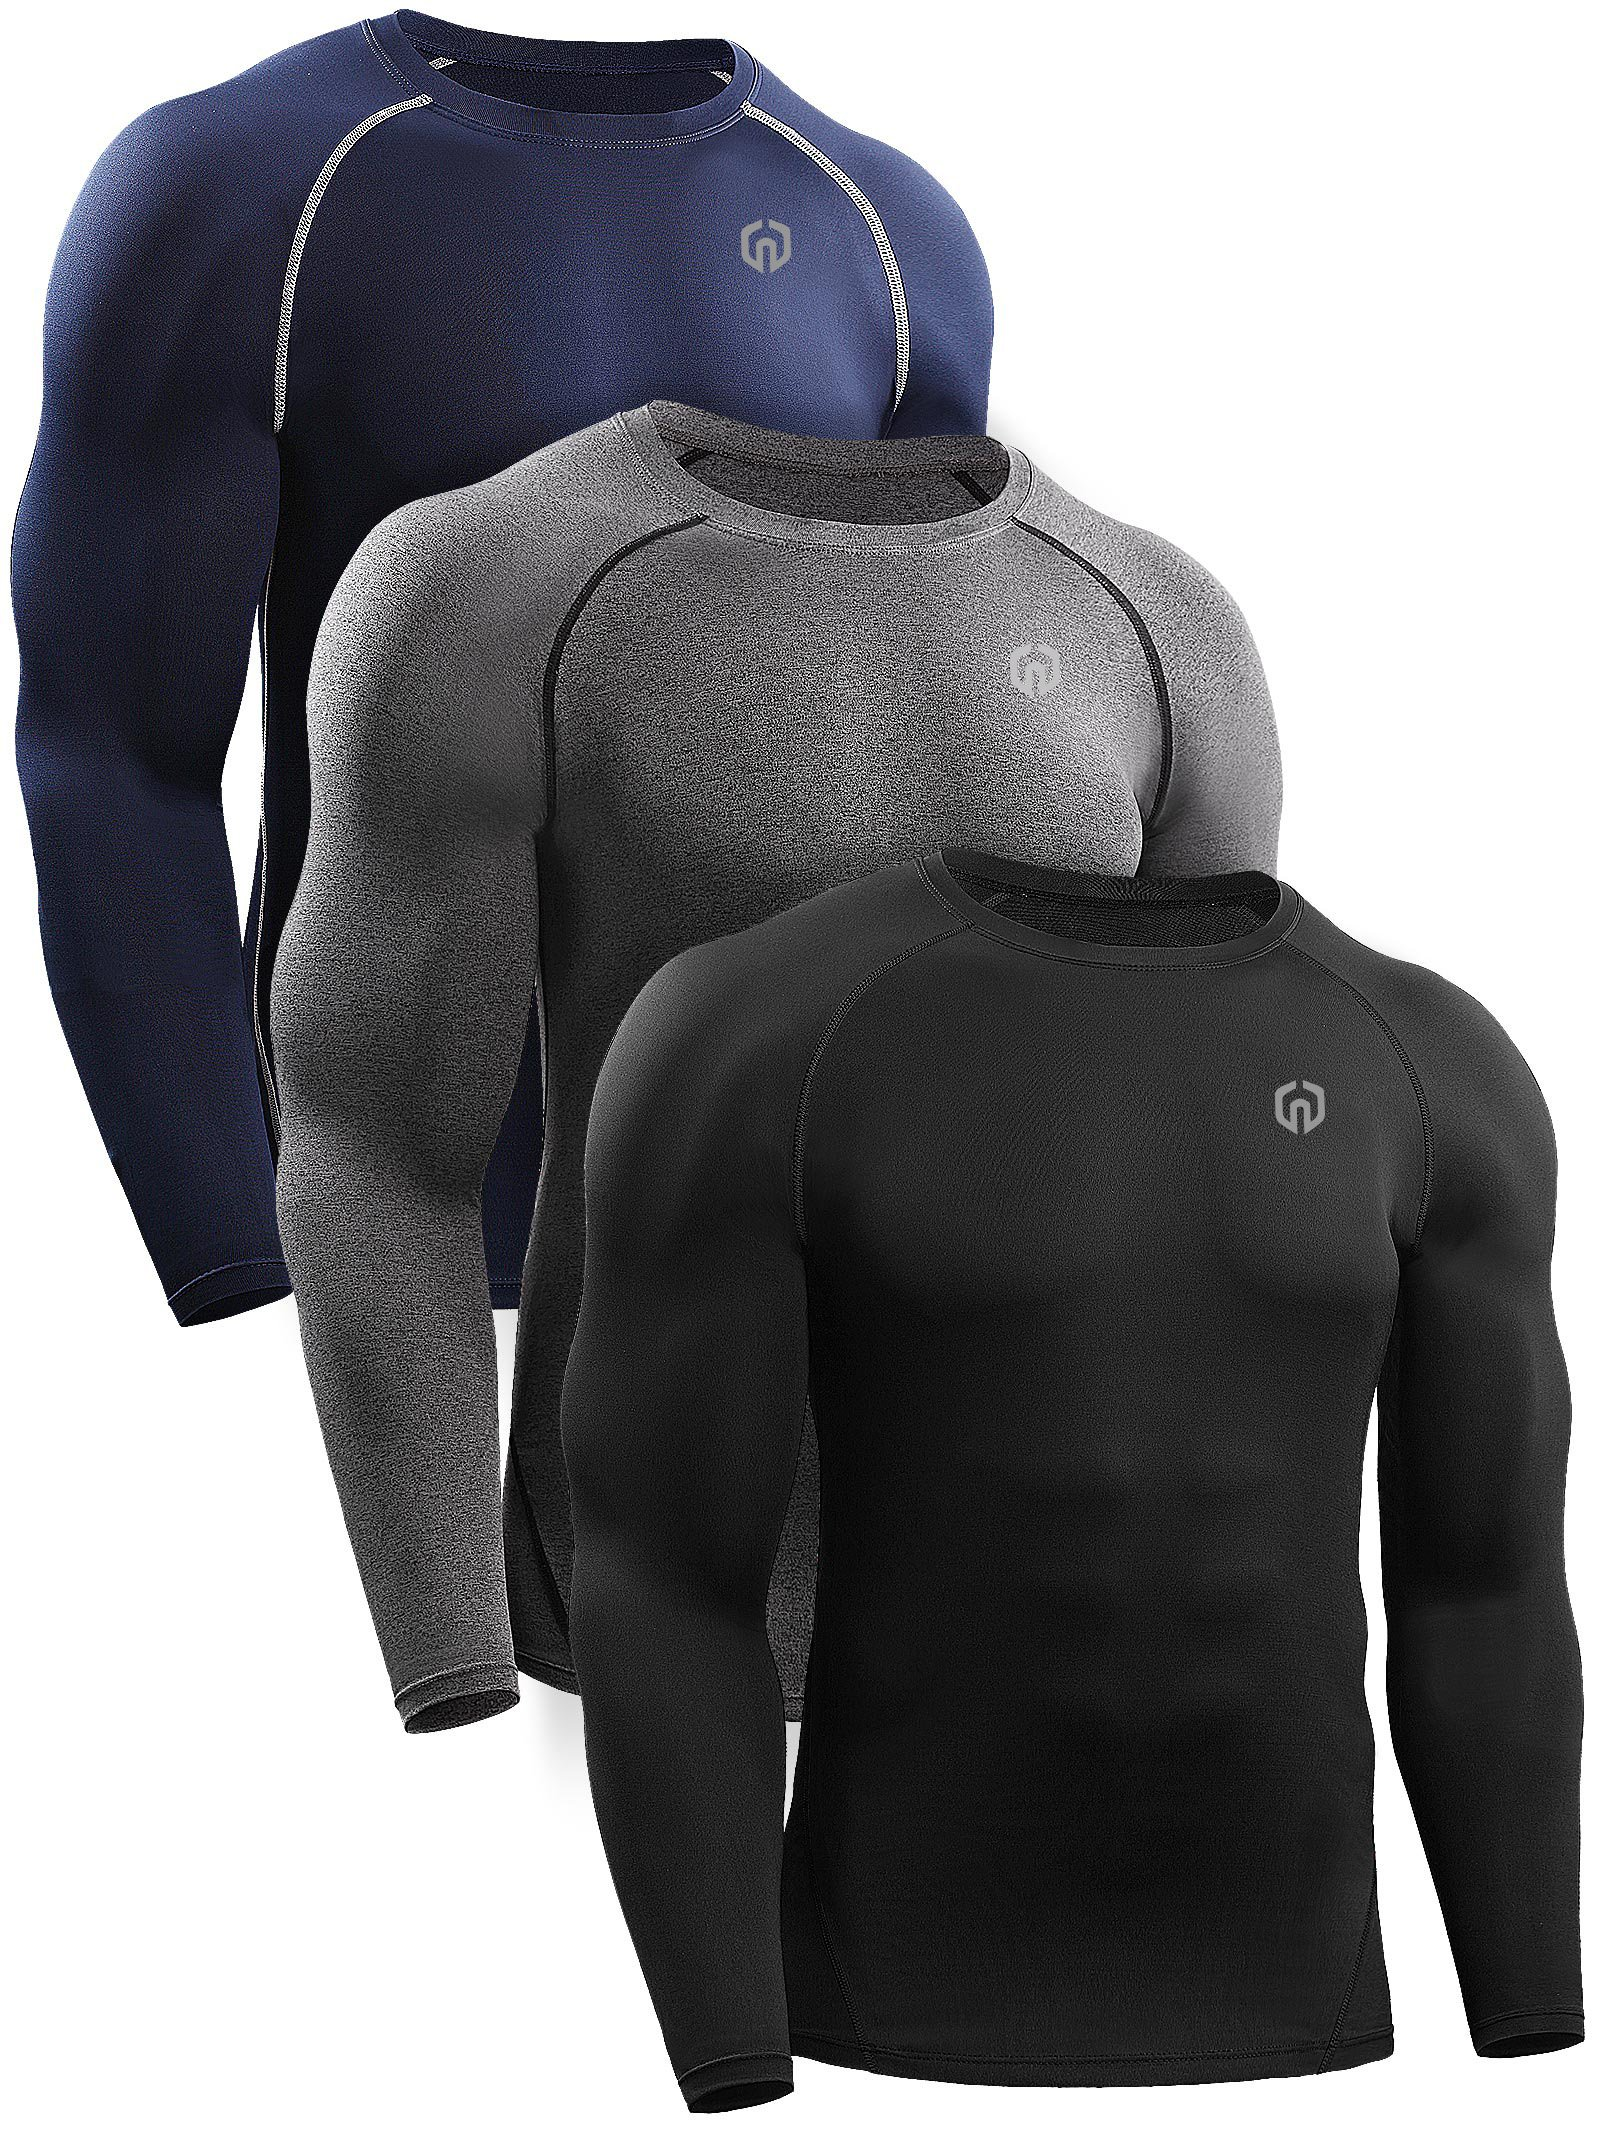 Neleus Men's 3 Pack Workout Compression Long Sleeve Shirt,5035,Black,Grey,Navy Blue,US S,EU M